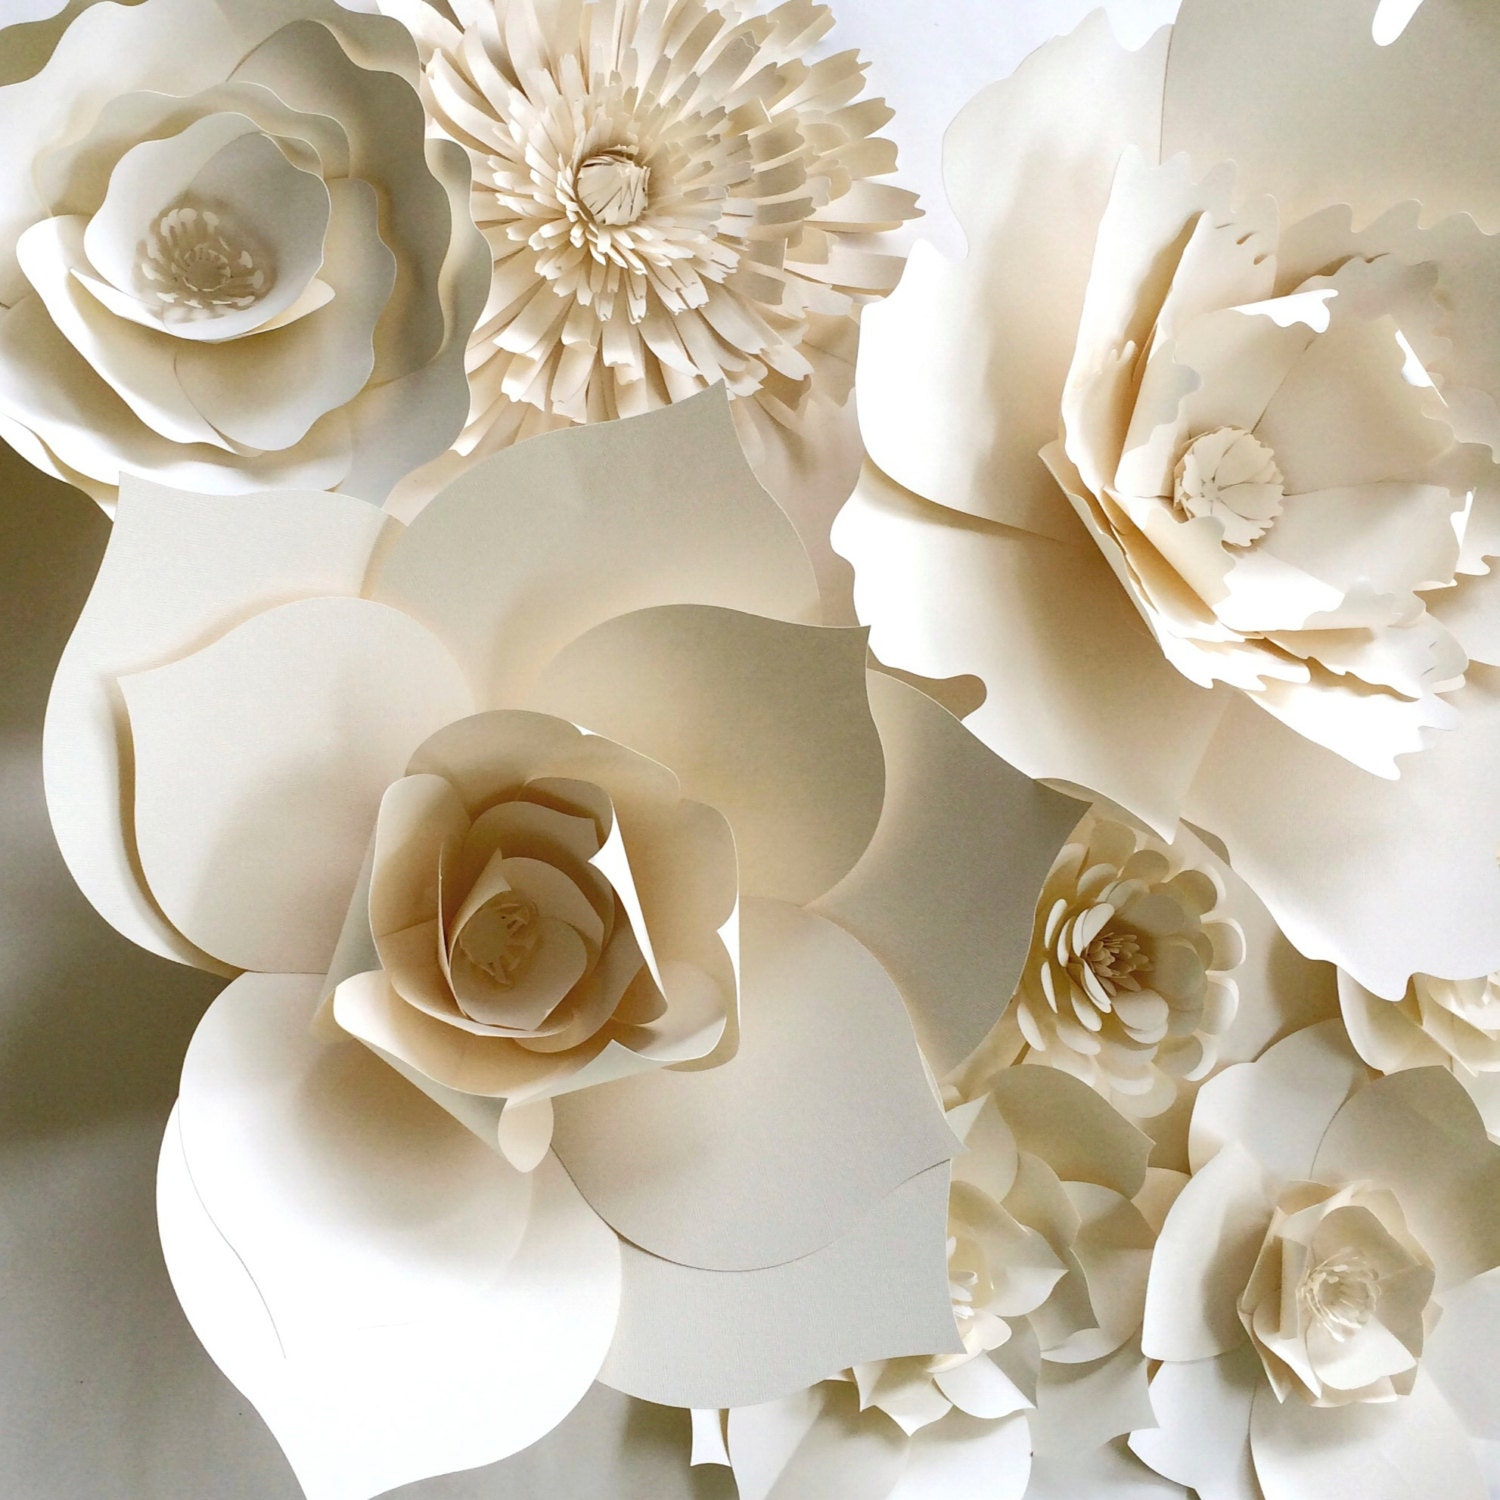 Paper Flower Wall Decor Large Paper Flower Paper Flower. Steam Room Generator. Decorative Grille Panels. Rooms For Rent Danbury Ct. Living Room Chandelier. Black And Gold Decorative Pillows. Rooms For Rent Lakewood Co. Meeting Room Booking Software Free. Kmart Living Room Furniture